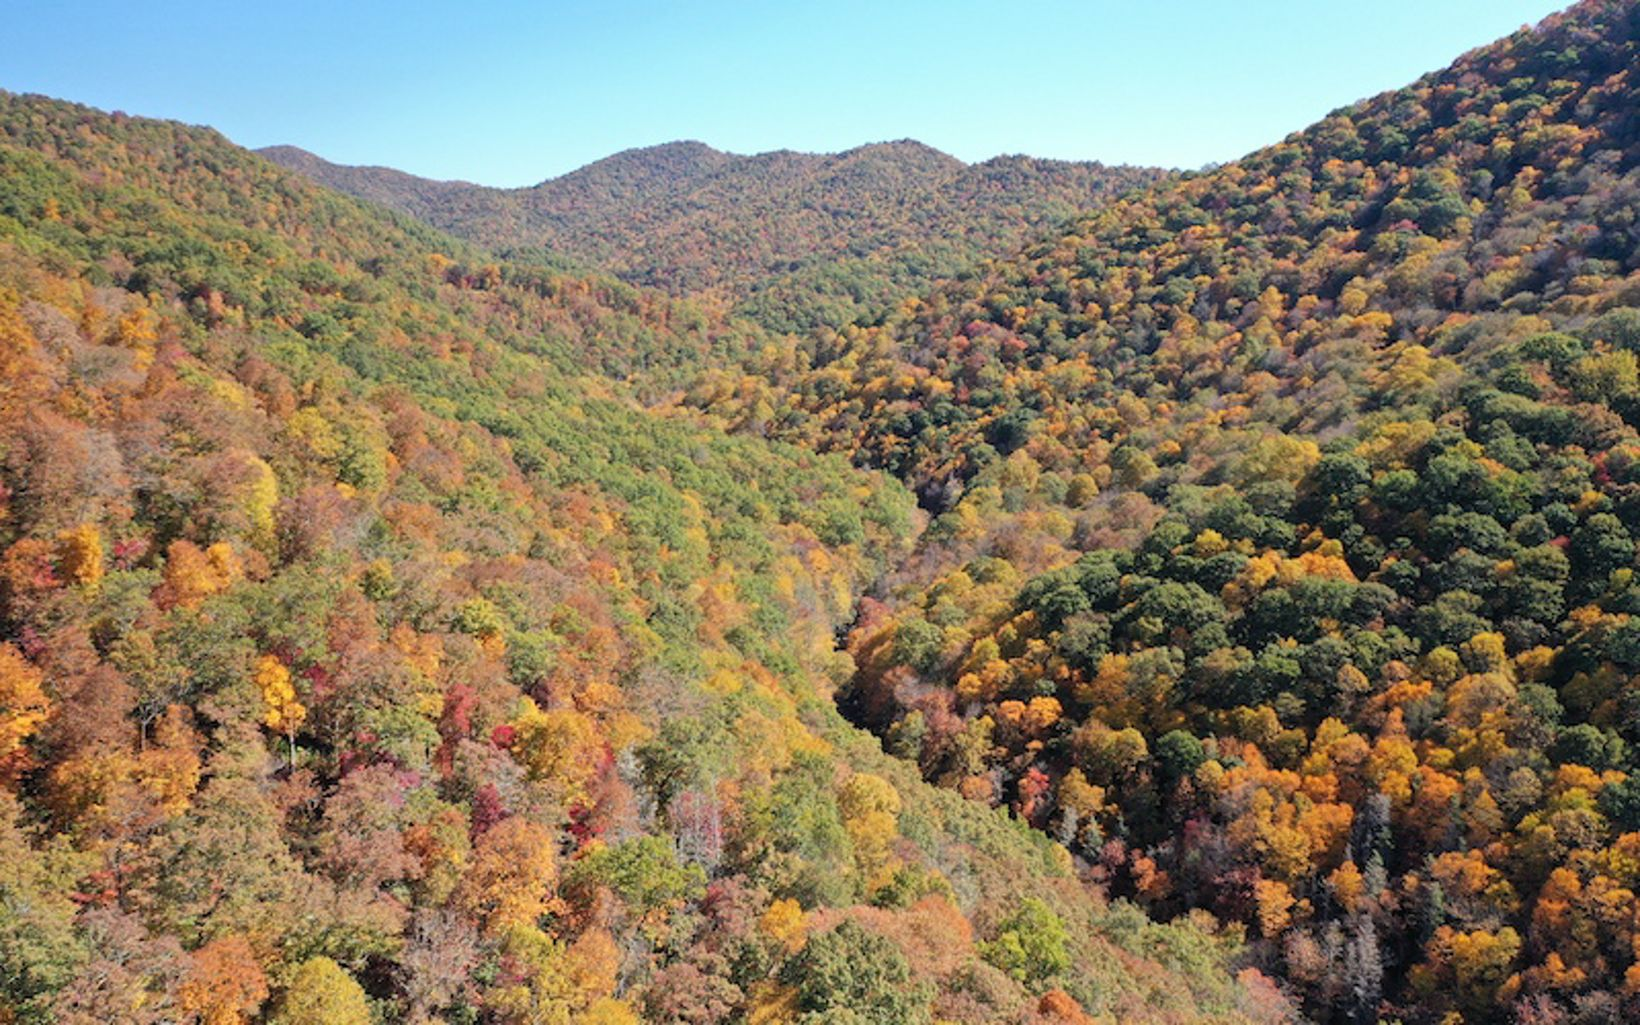 mountains with fall foliage